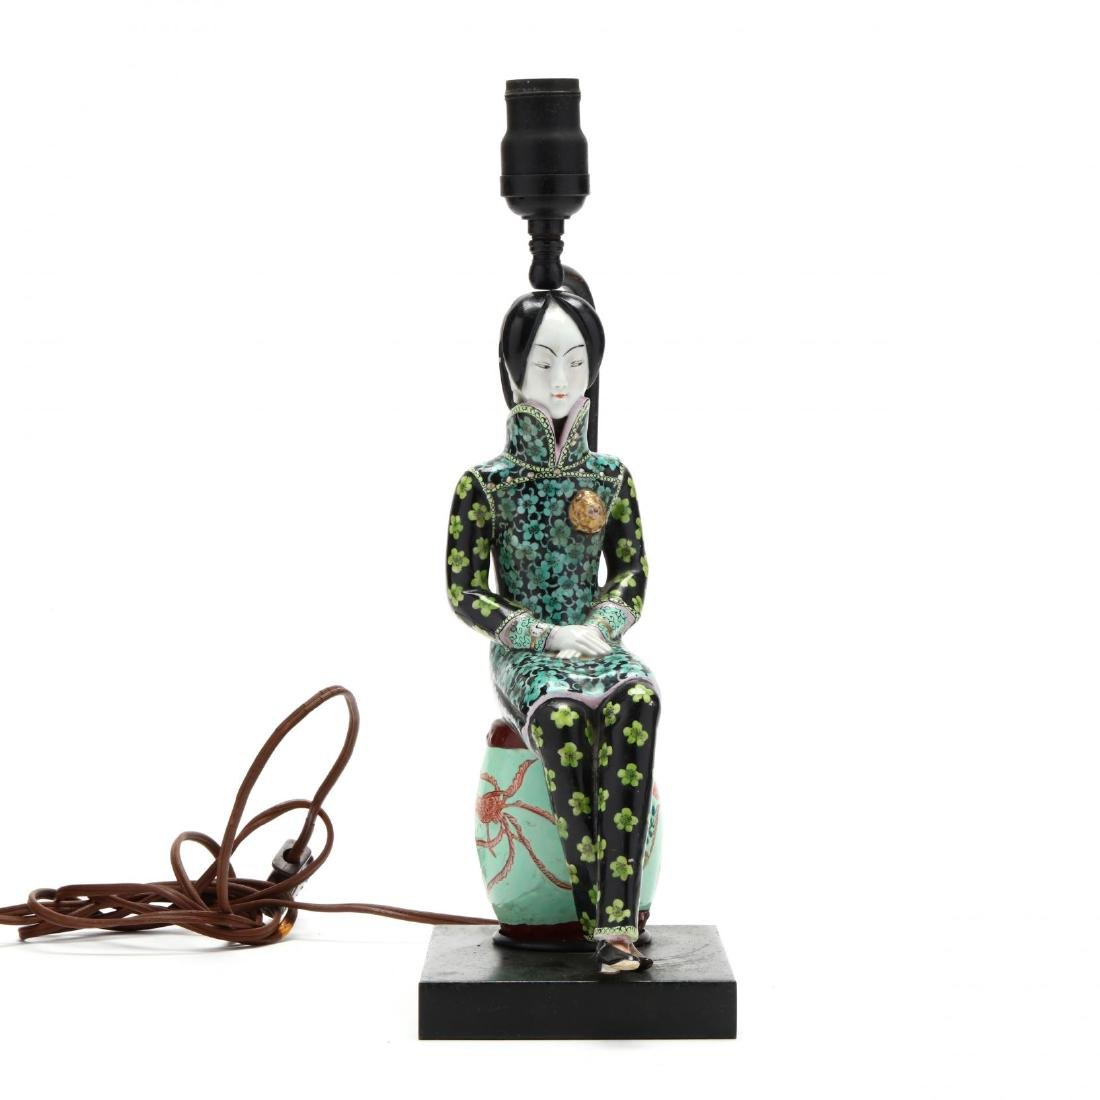 A Chinese Figurine Lamp - 4